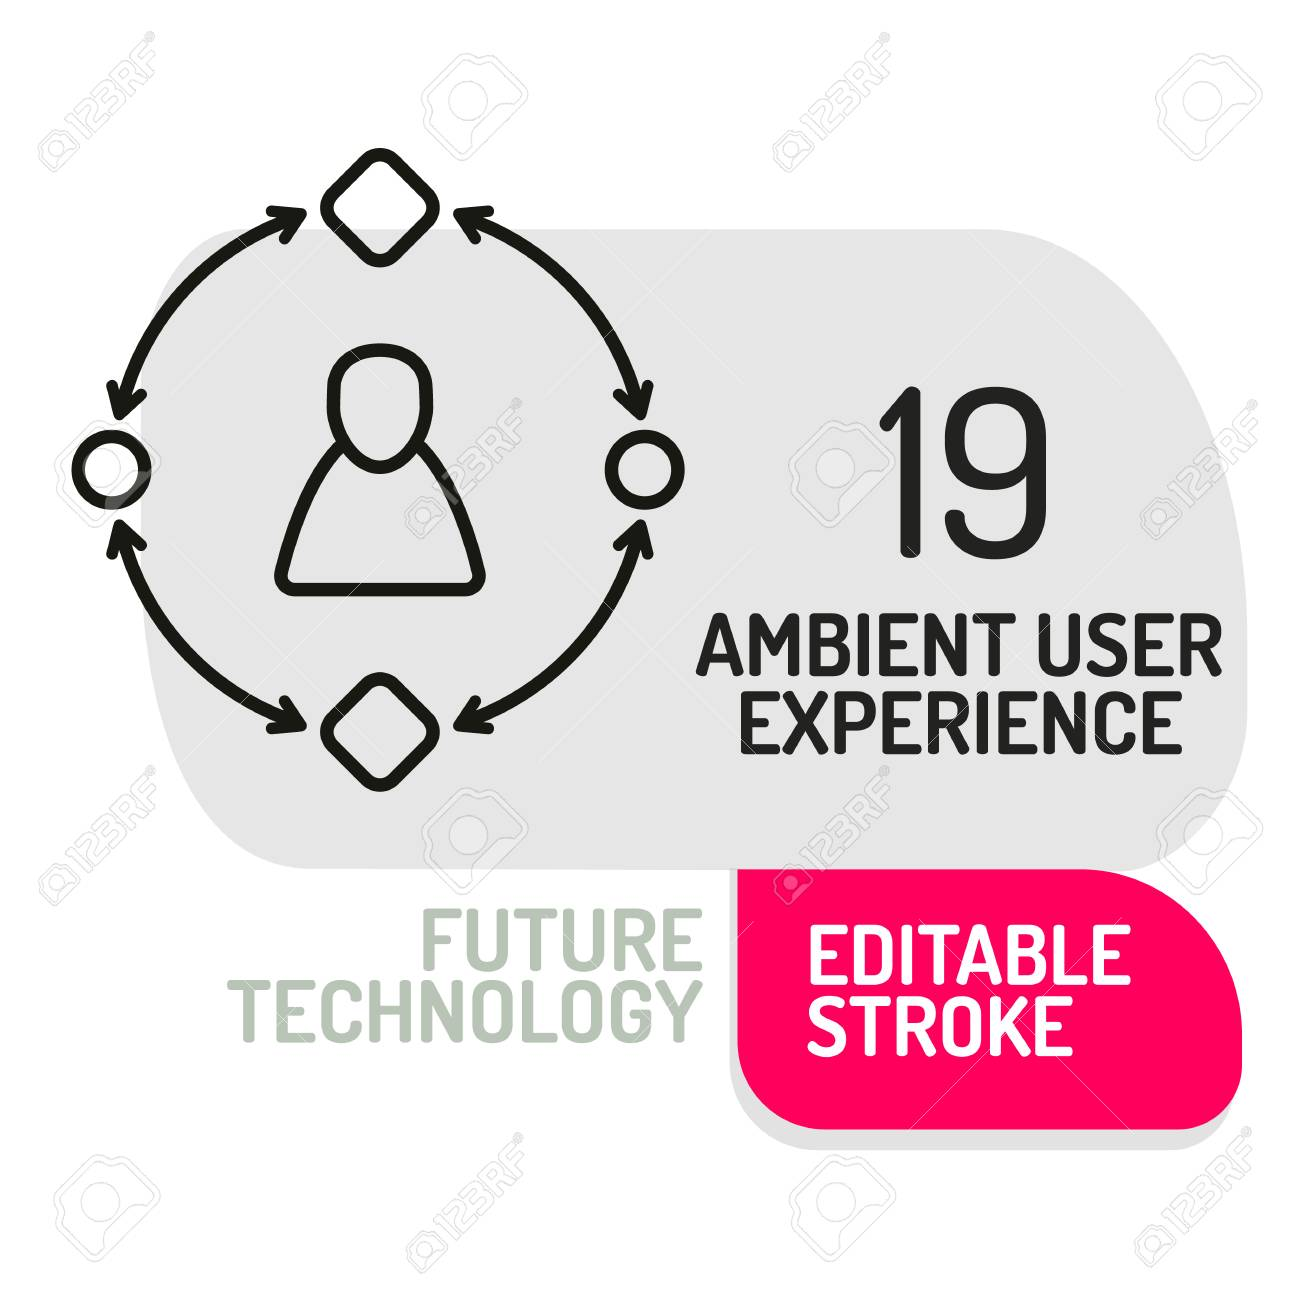 Ambient User Experience Icon Thin Line Of Future Technology Vector Illustration Stock